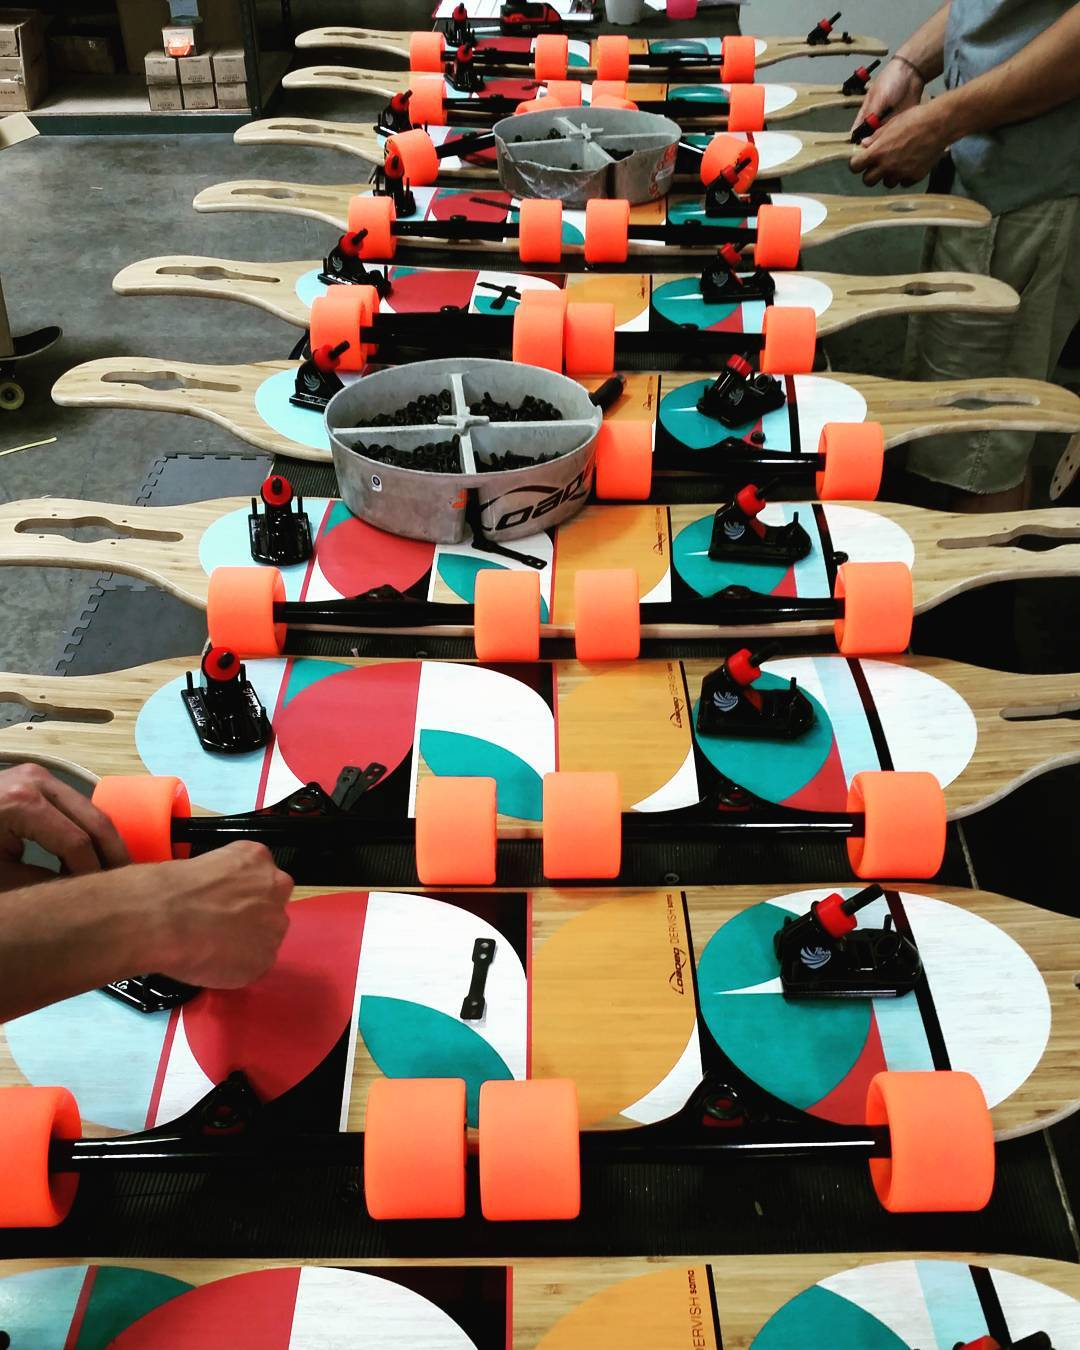 Loaded Dervish Samas eagerly awaiting to slip under your feet and carry you into summer.  #LoadedBoards #DervishSama #Dervish #Orangatang #Orange #Durians